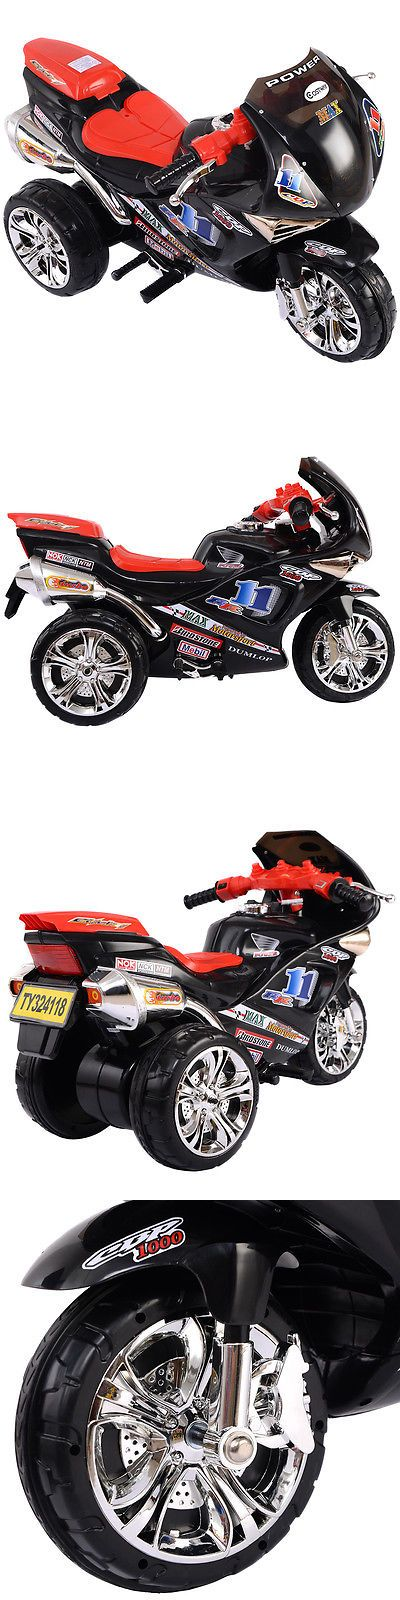 Ride On Toys and Accessories 145944: 3 Wheel Kids Ride On Motorcycle 6V Battery Powered Electric Toy Power Bicyle New -> BUY IT NOW ONLY: $69.99 on eBay!